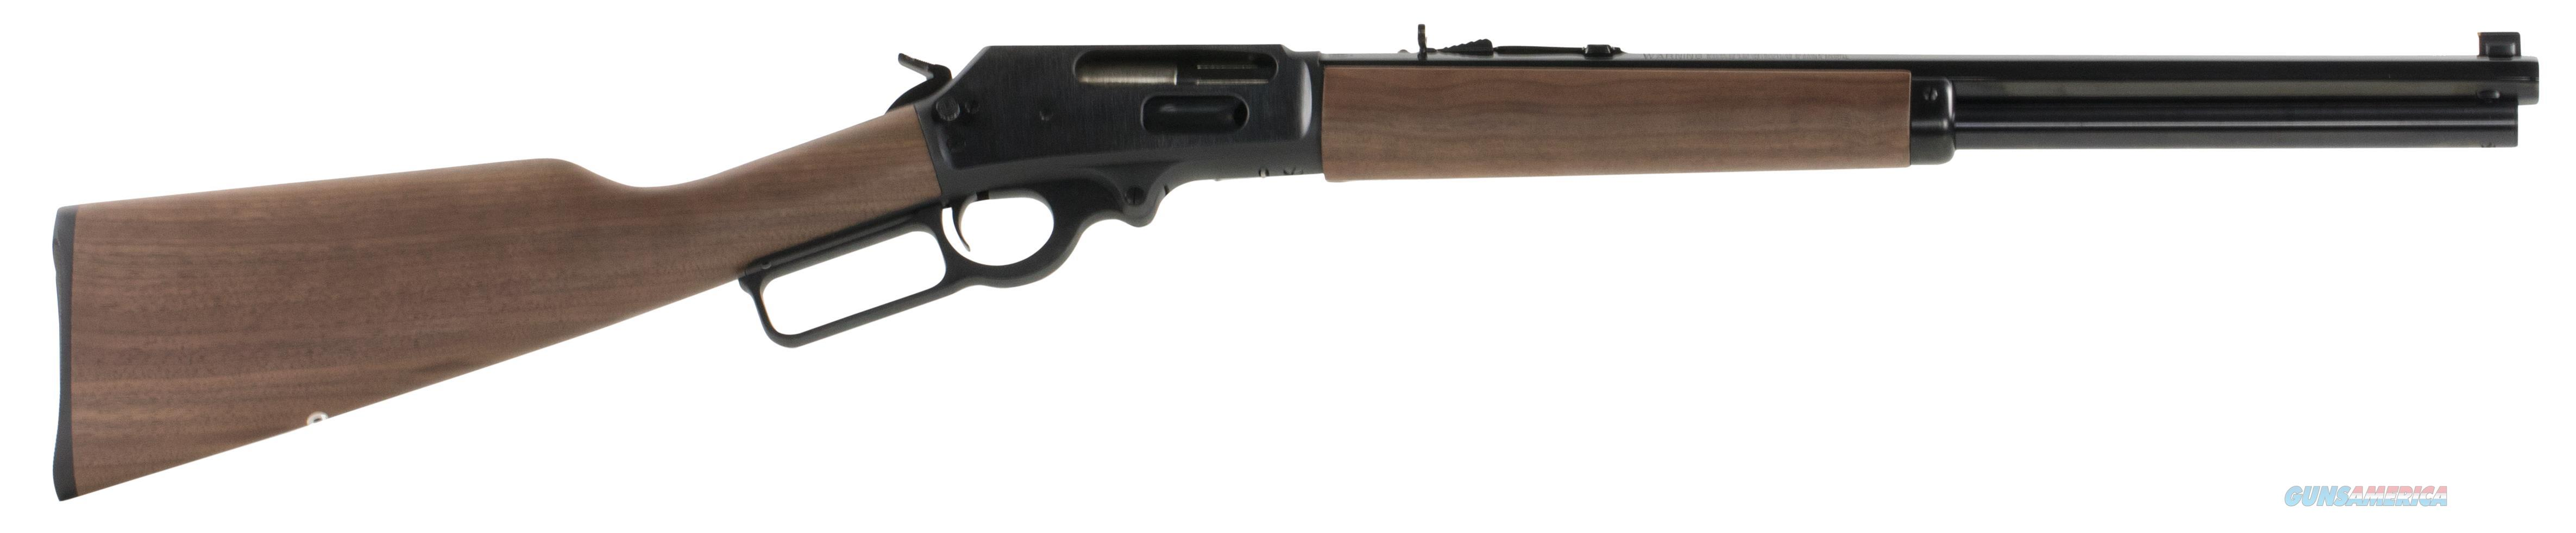 "Marlin 70458 1895 Cba Lever 45-70 Government 18.5"" 6+1 Black Walnut Stk Blued 70458  Guns > Rifles > MN Misc Rifles"